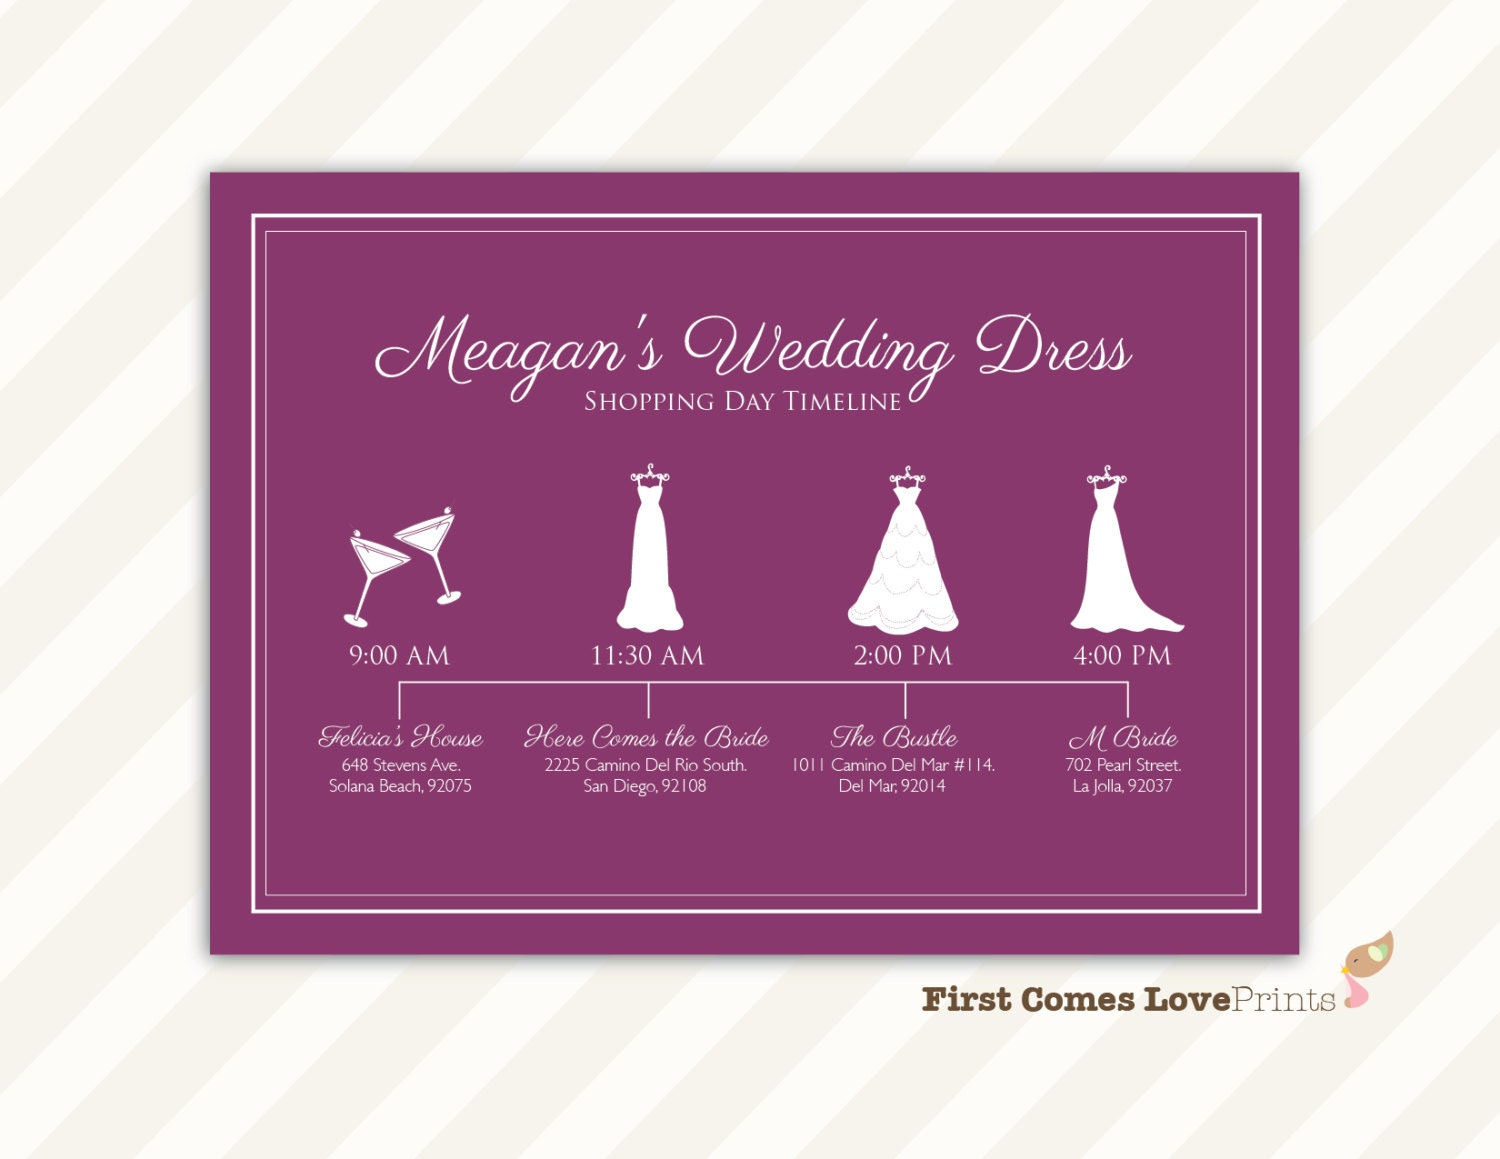 Wedding Dress Shopping Day Schedule for Bridesmaids